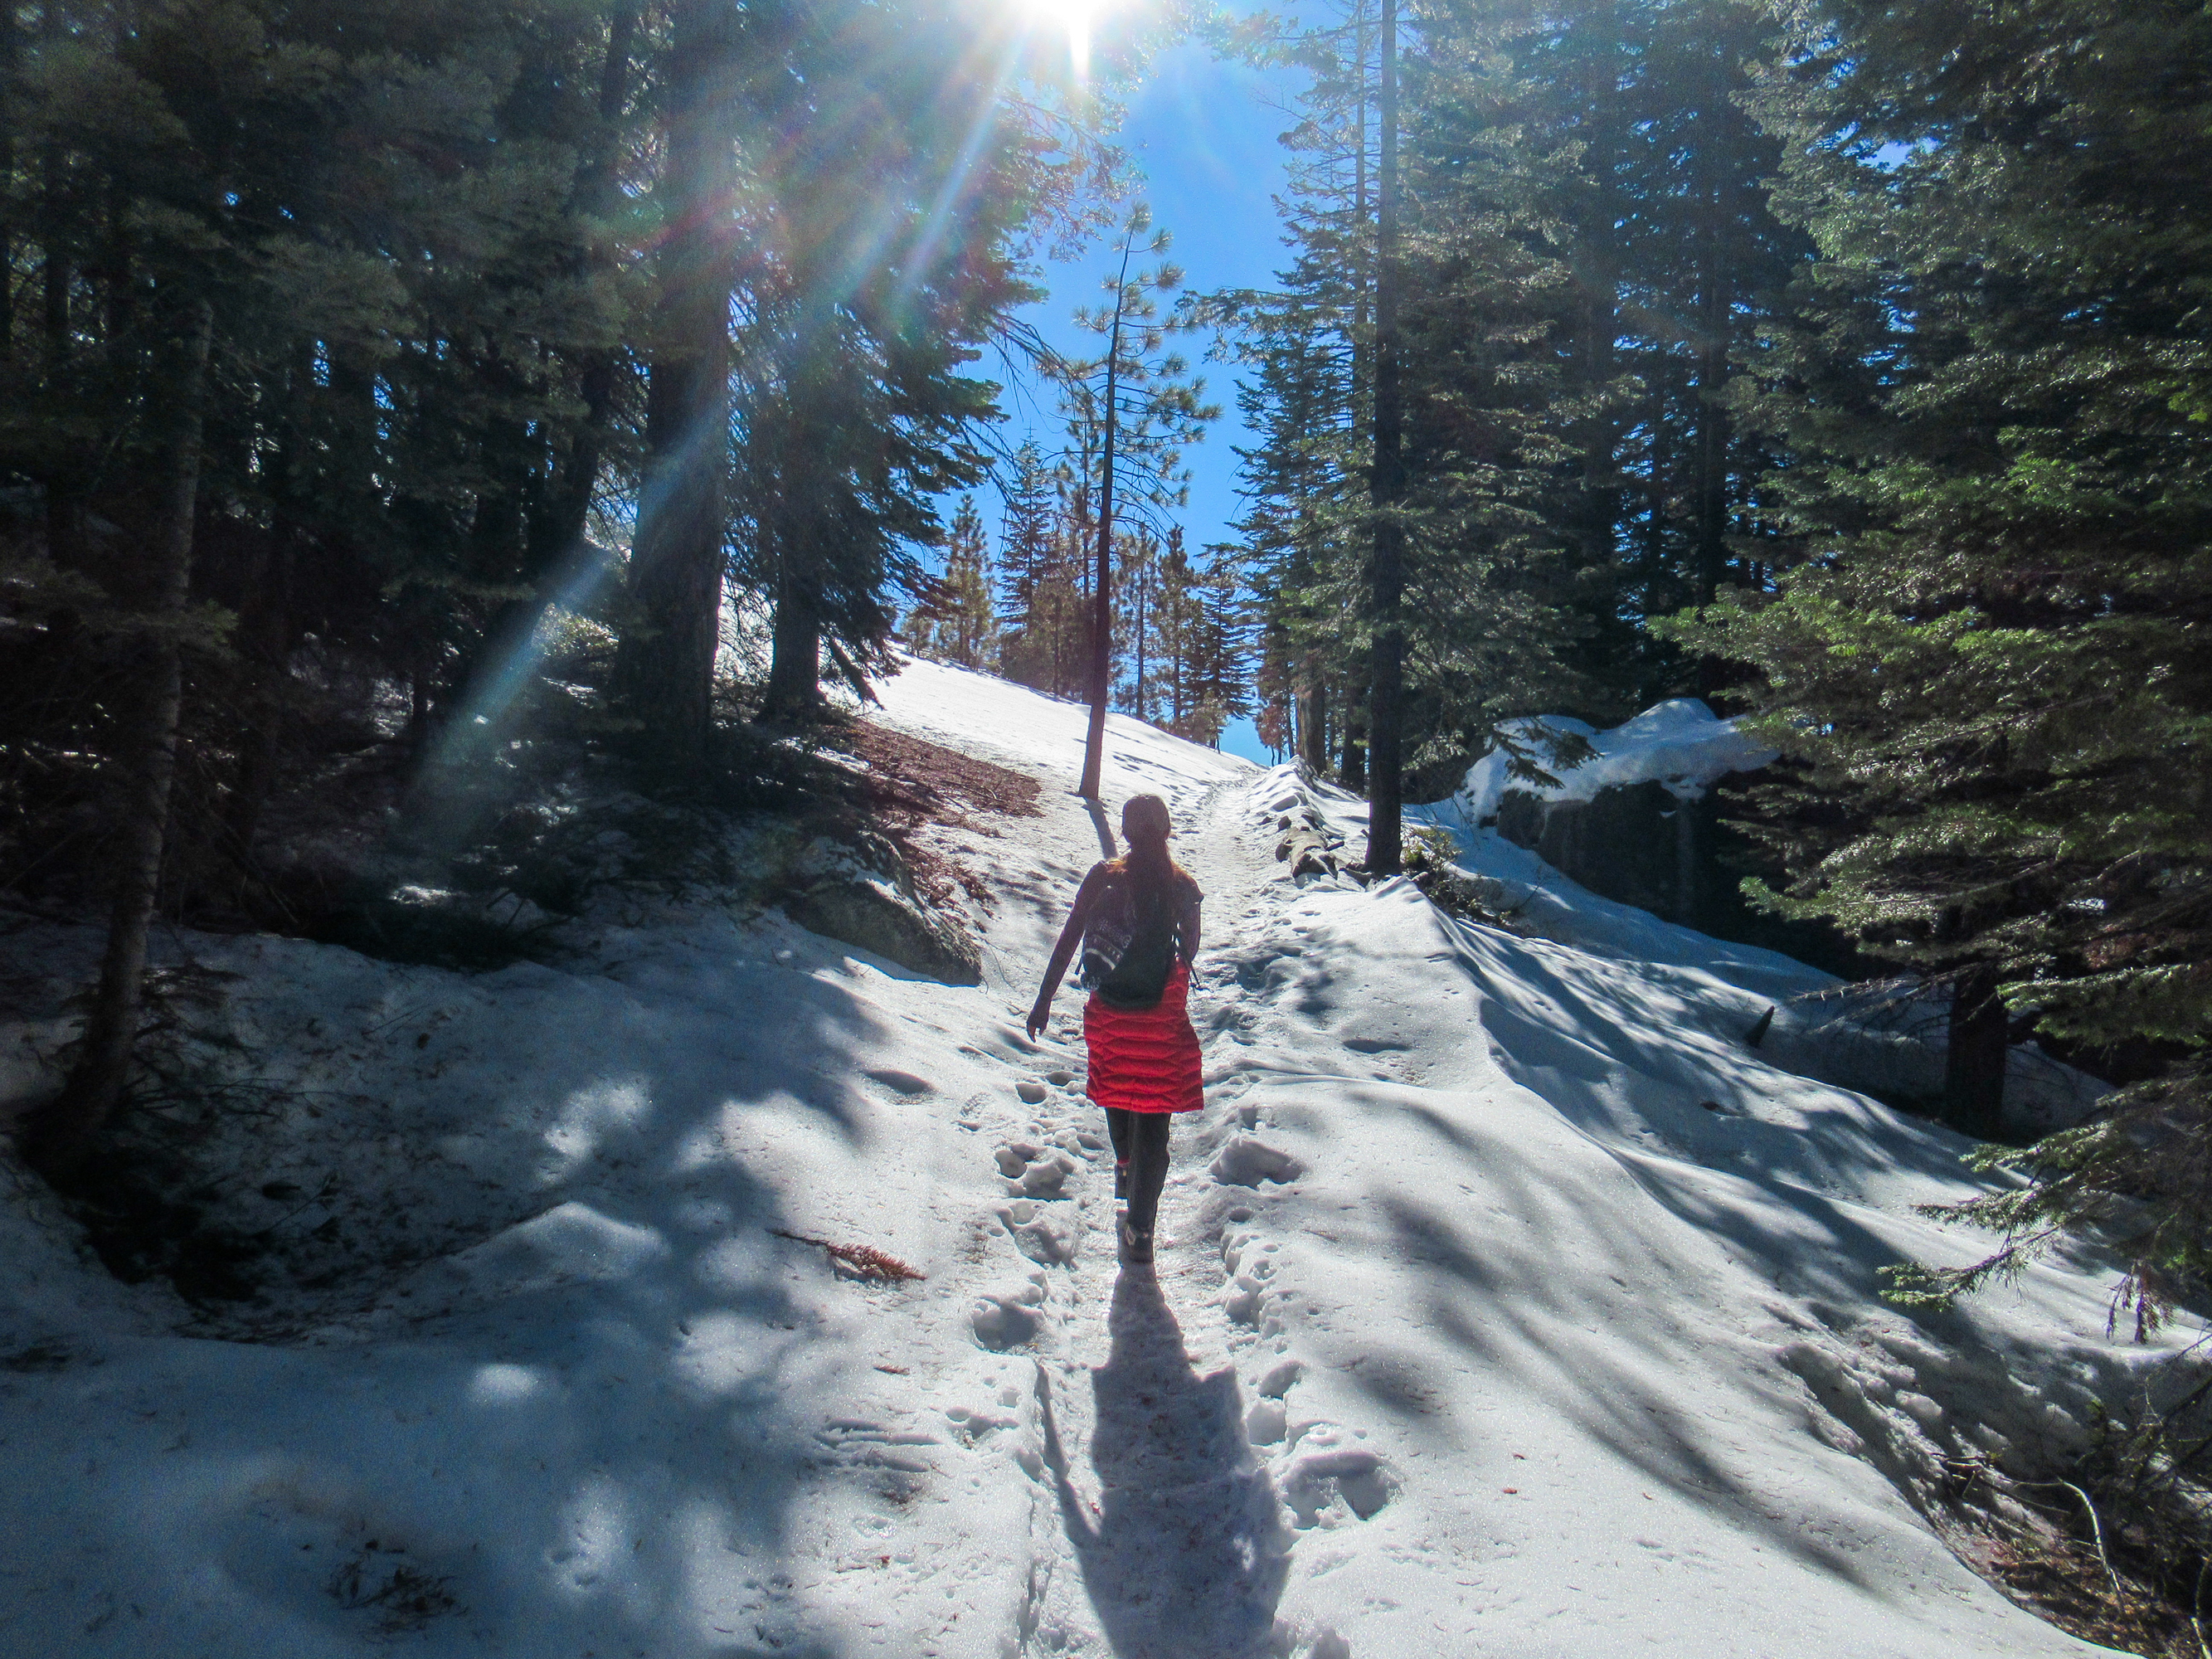 A snowy trail winds between trees above Yosemite Falls.